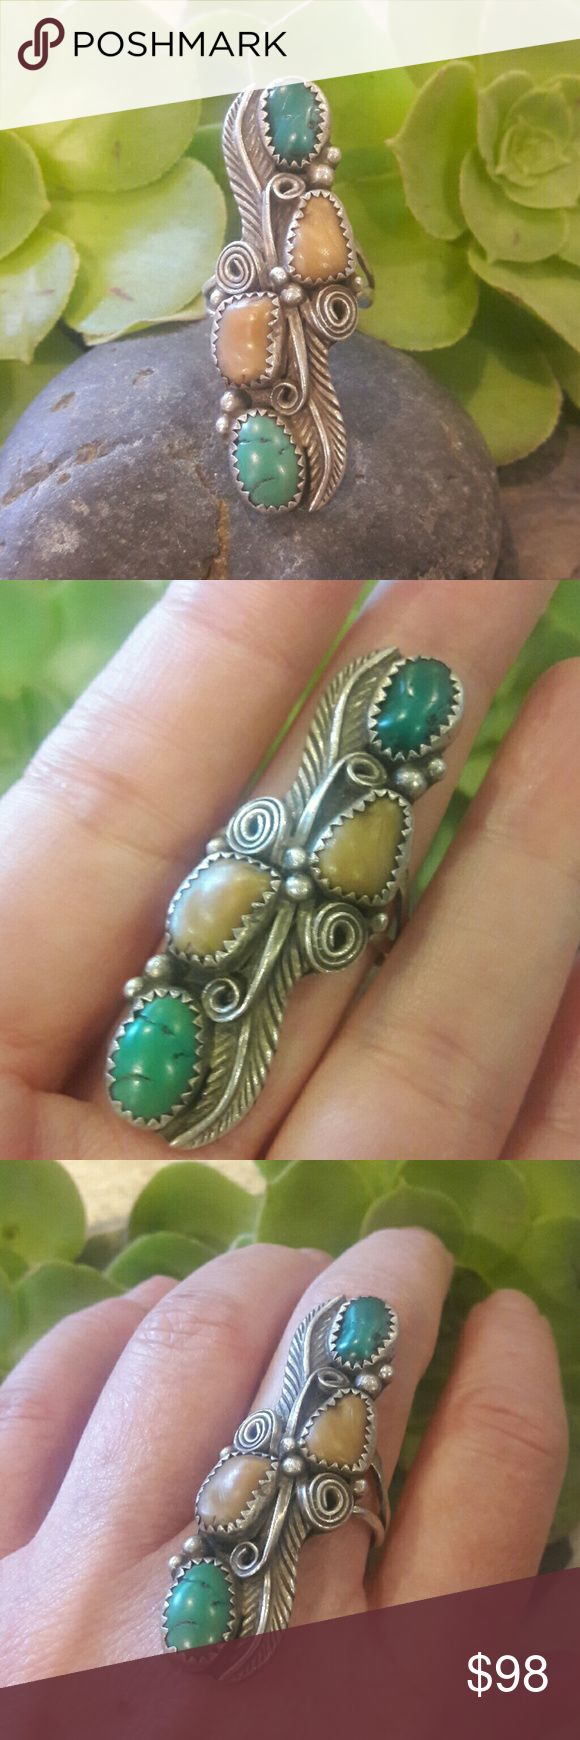 "Vintage SS Navajo Turquoise/Spiny Oyster Ring Beautiful green Turquoise stones and spiny oyster stones, large ring that is 2"" Long x 1/2"" Wide. Makers mark AP inside band. Beautiful ring tested for Sterling by my jeweler. Vintage Jewelry Rings"